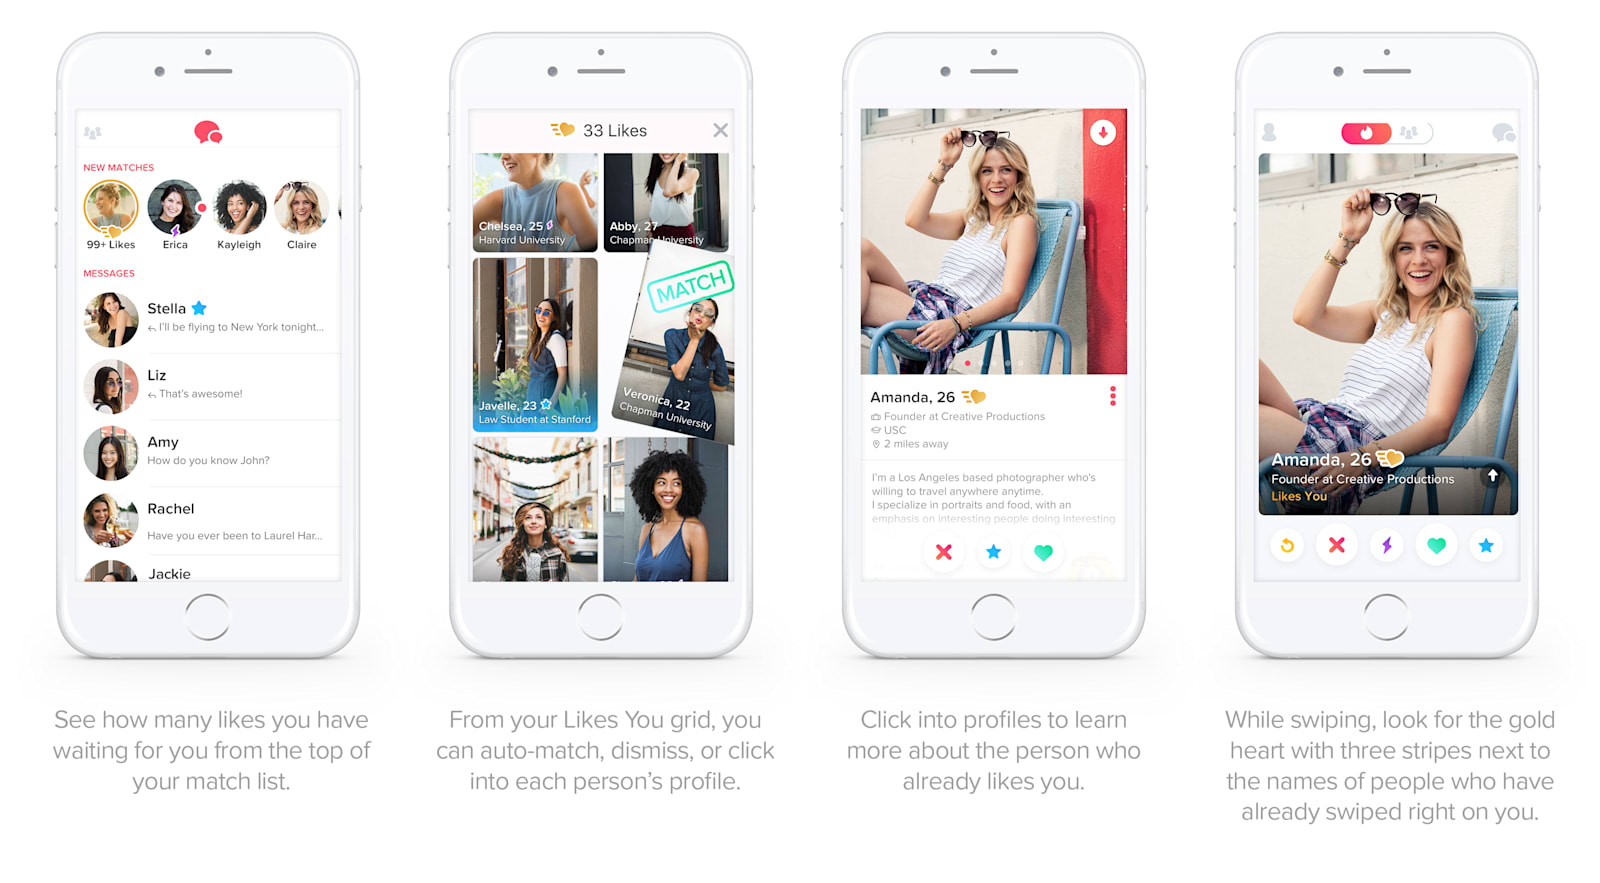 Tinders new Gold subscription shows your likes before